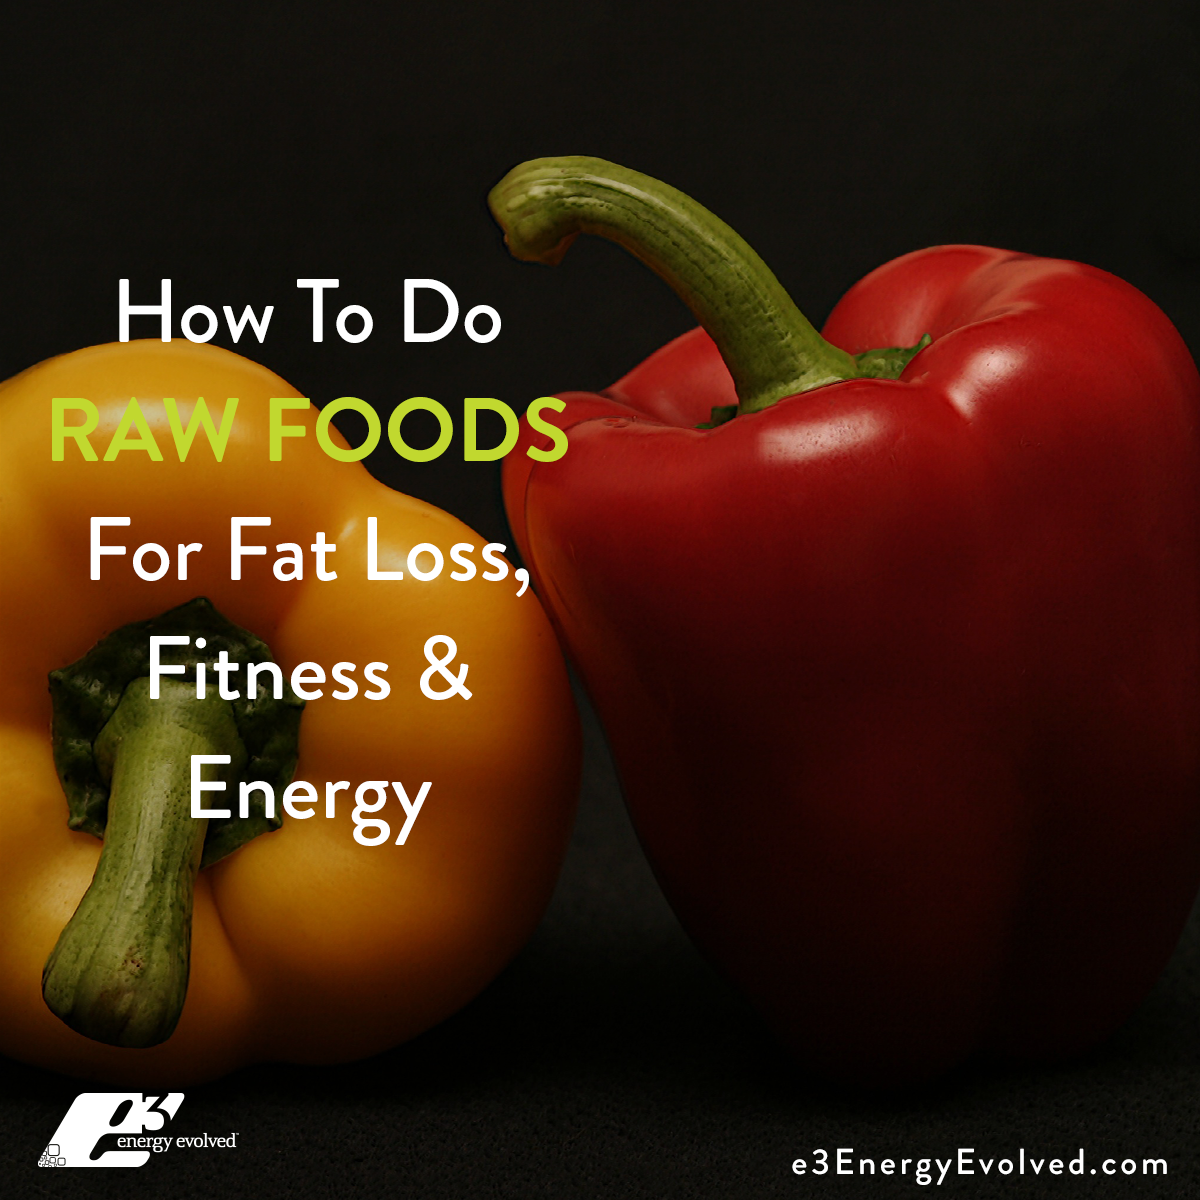 raw foods, raw foods nutrition, nutrition, functional nutritionist, fat loss, food energetics, energy, metabolism, metabolic health, weight loss, fitness, exercise physiology